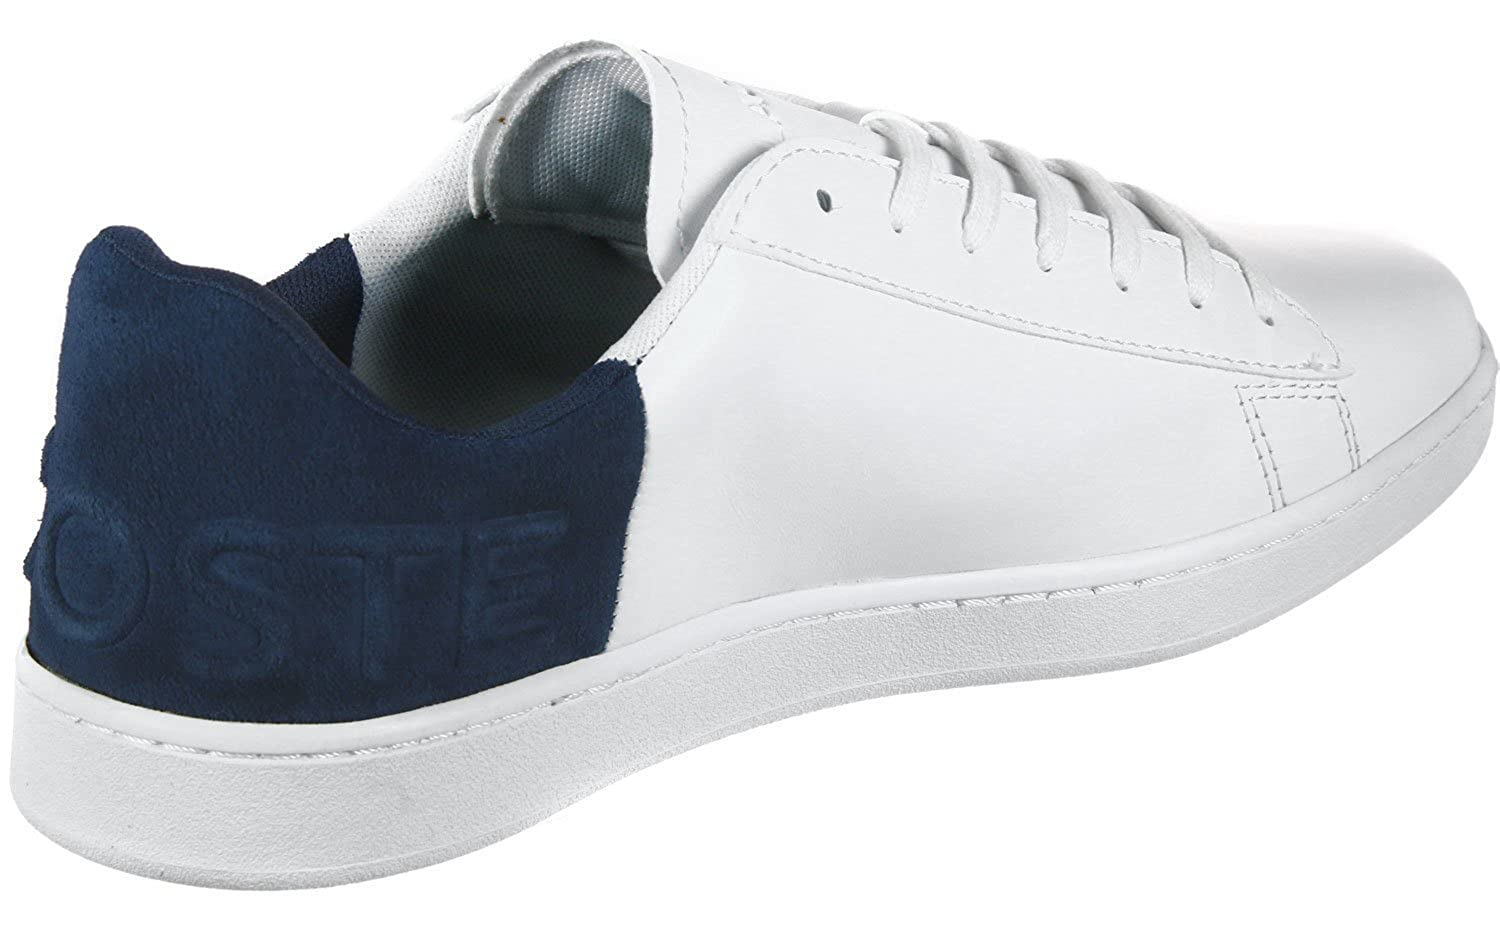 0bf0068d9 Lacoste Carnaby EVO 318 2 QSP Trainers in White   Navy Blue 736SPM0044 042   UK 12 EU 47   Amazon.co.uk  Shoes   Bags